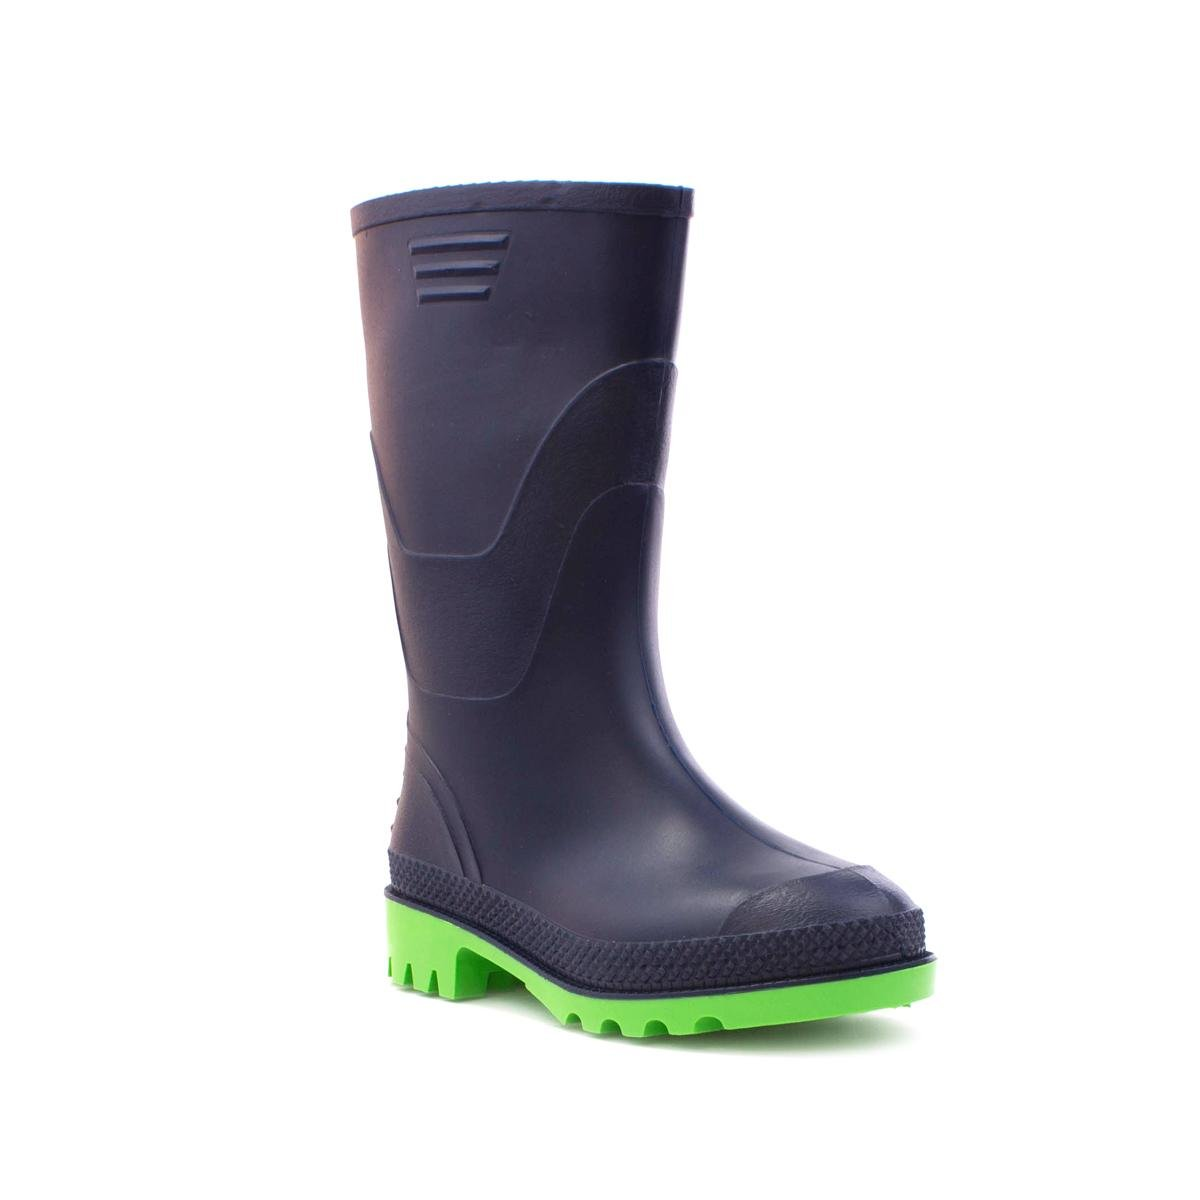 Zone Hearts Kids Wellington Boots in Navy and Green - Size 6 UK/7 US - Blue